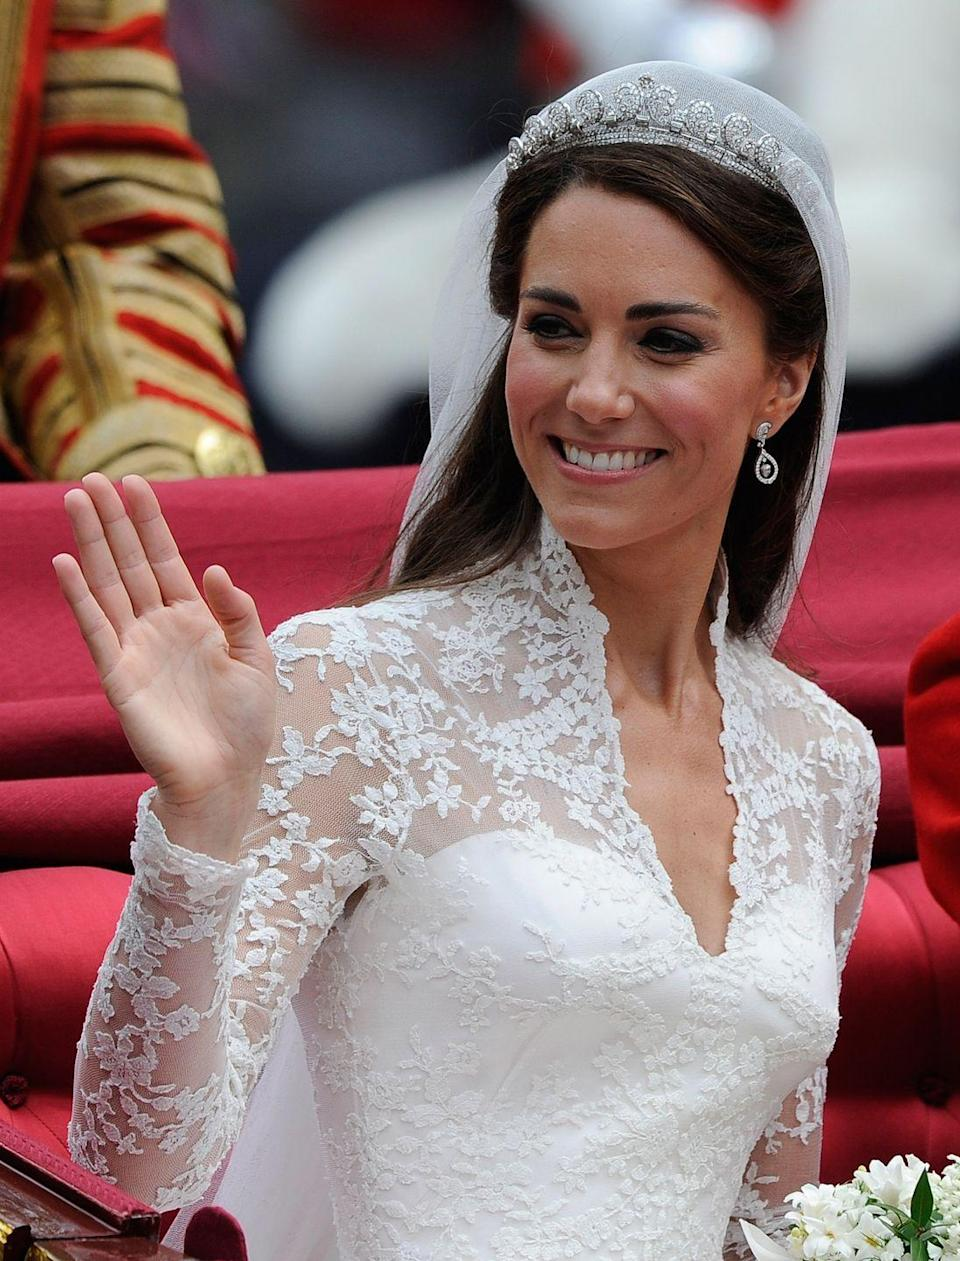 """<p>She took a few classes from Bobbi Brown makeup artist Hannah Martin because the Duchess of Cambridge insisted on <a href=""""https://people.com/royals/kate-middletons-wedding-day-makeup-all-the-beauty-products-she-used/"""" rel=""""nofollow noopener"""" target=""""_blank"""" data-ylk=""""slk:doing her own makeup"""" class=""""link rapid-noclick-resp"""">doing her own makeup</a> for her big day. She kept her overall look fairly natural for the ceremony and used Bobbi Brown eyeshadow shades """"Rockstar"""" and """"Ivory"""" to finish off her face.</p>"""